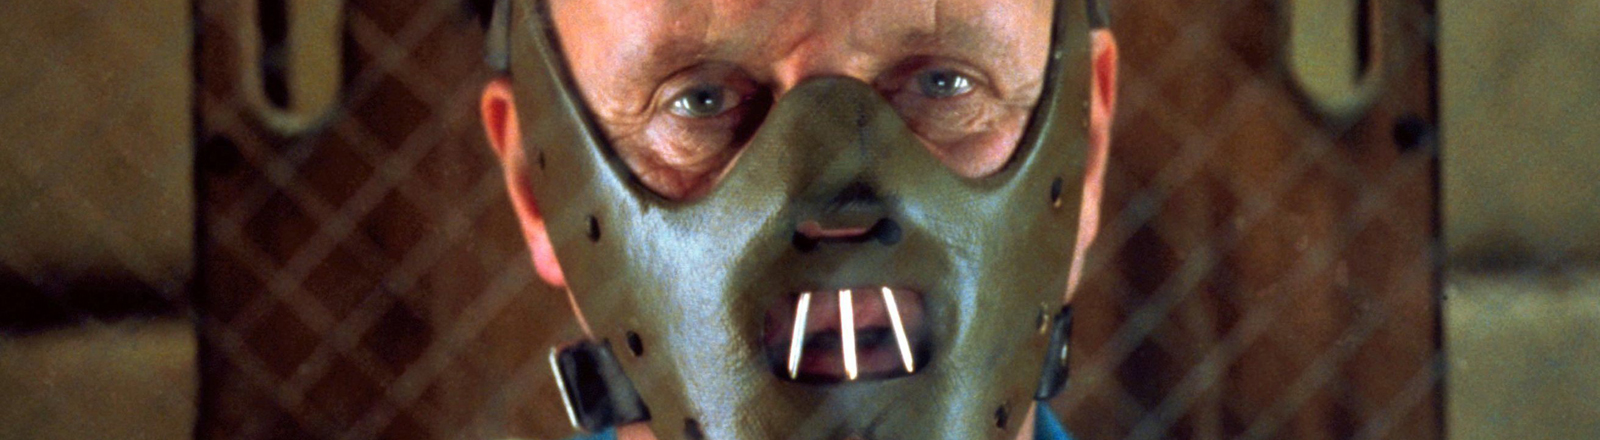 Anthony Hopkins spielt den Psychopathen Hannibal Lecter